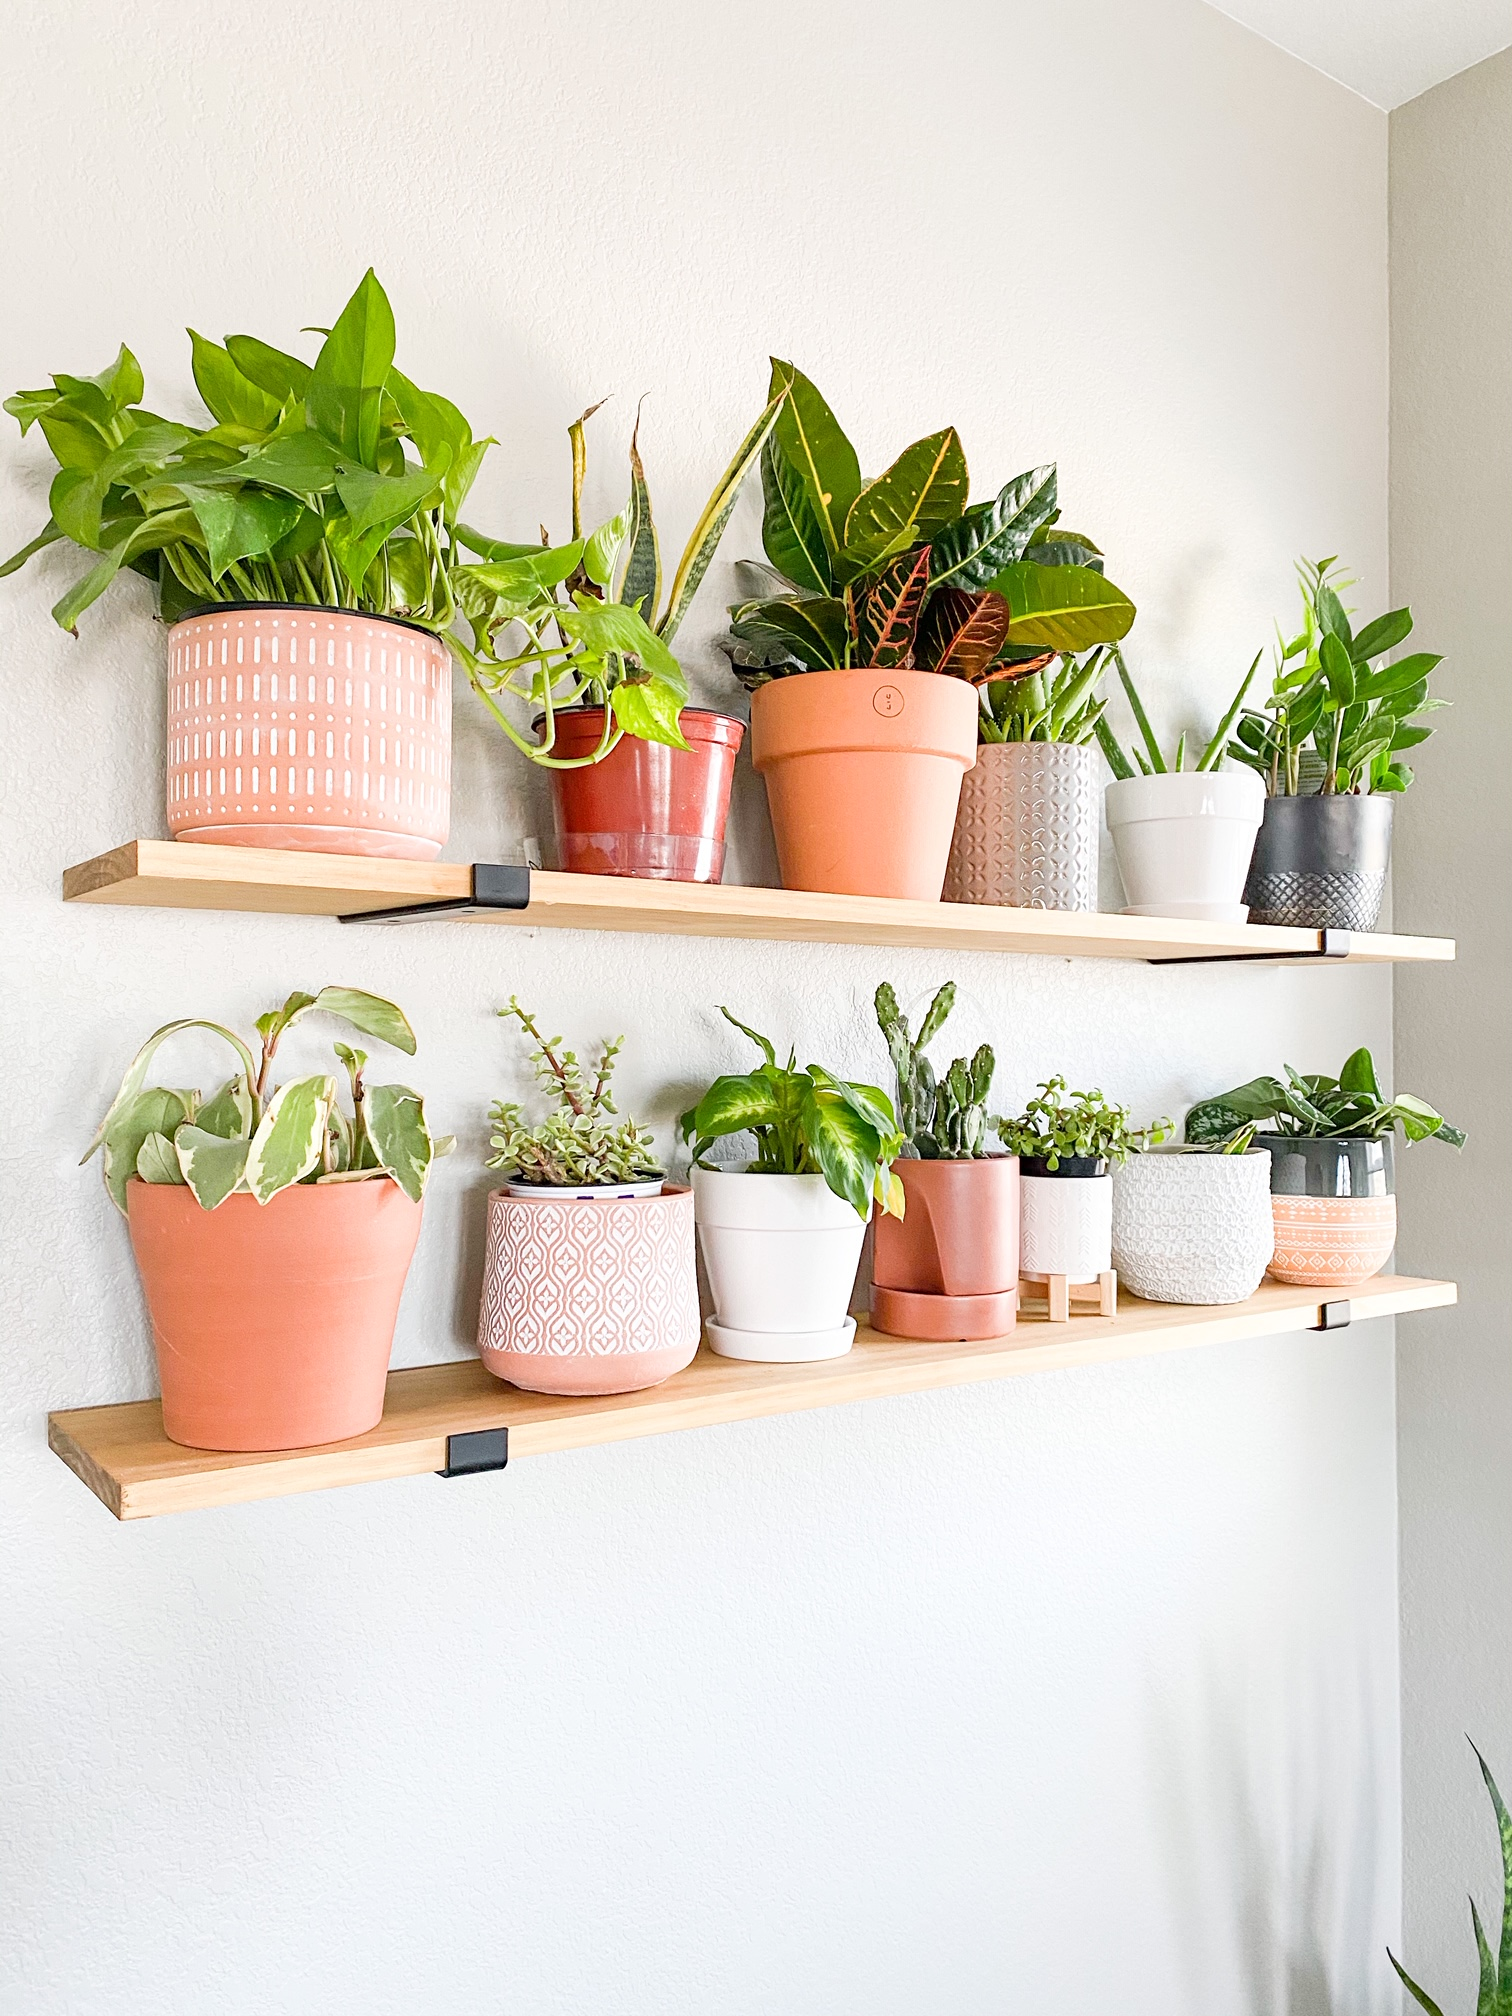 plants in different pots on floating shelves